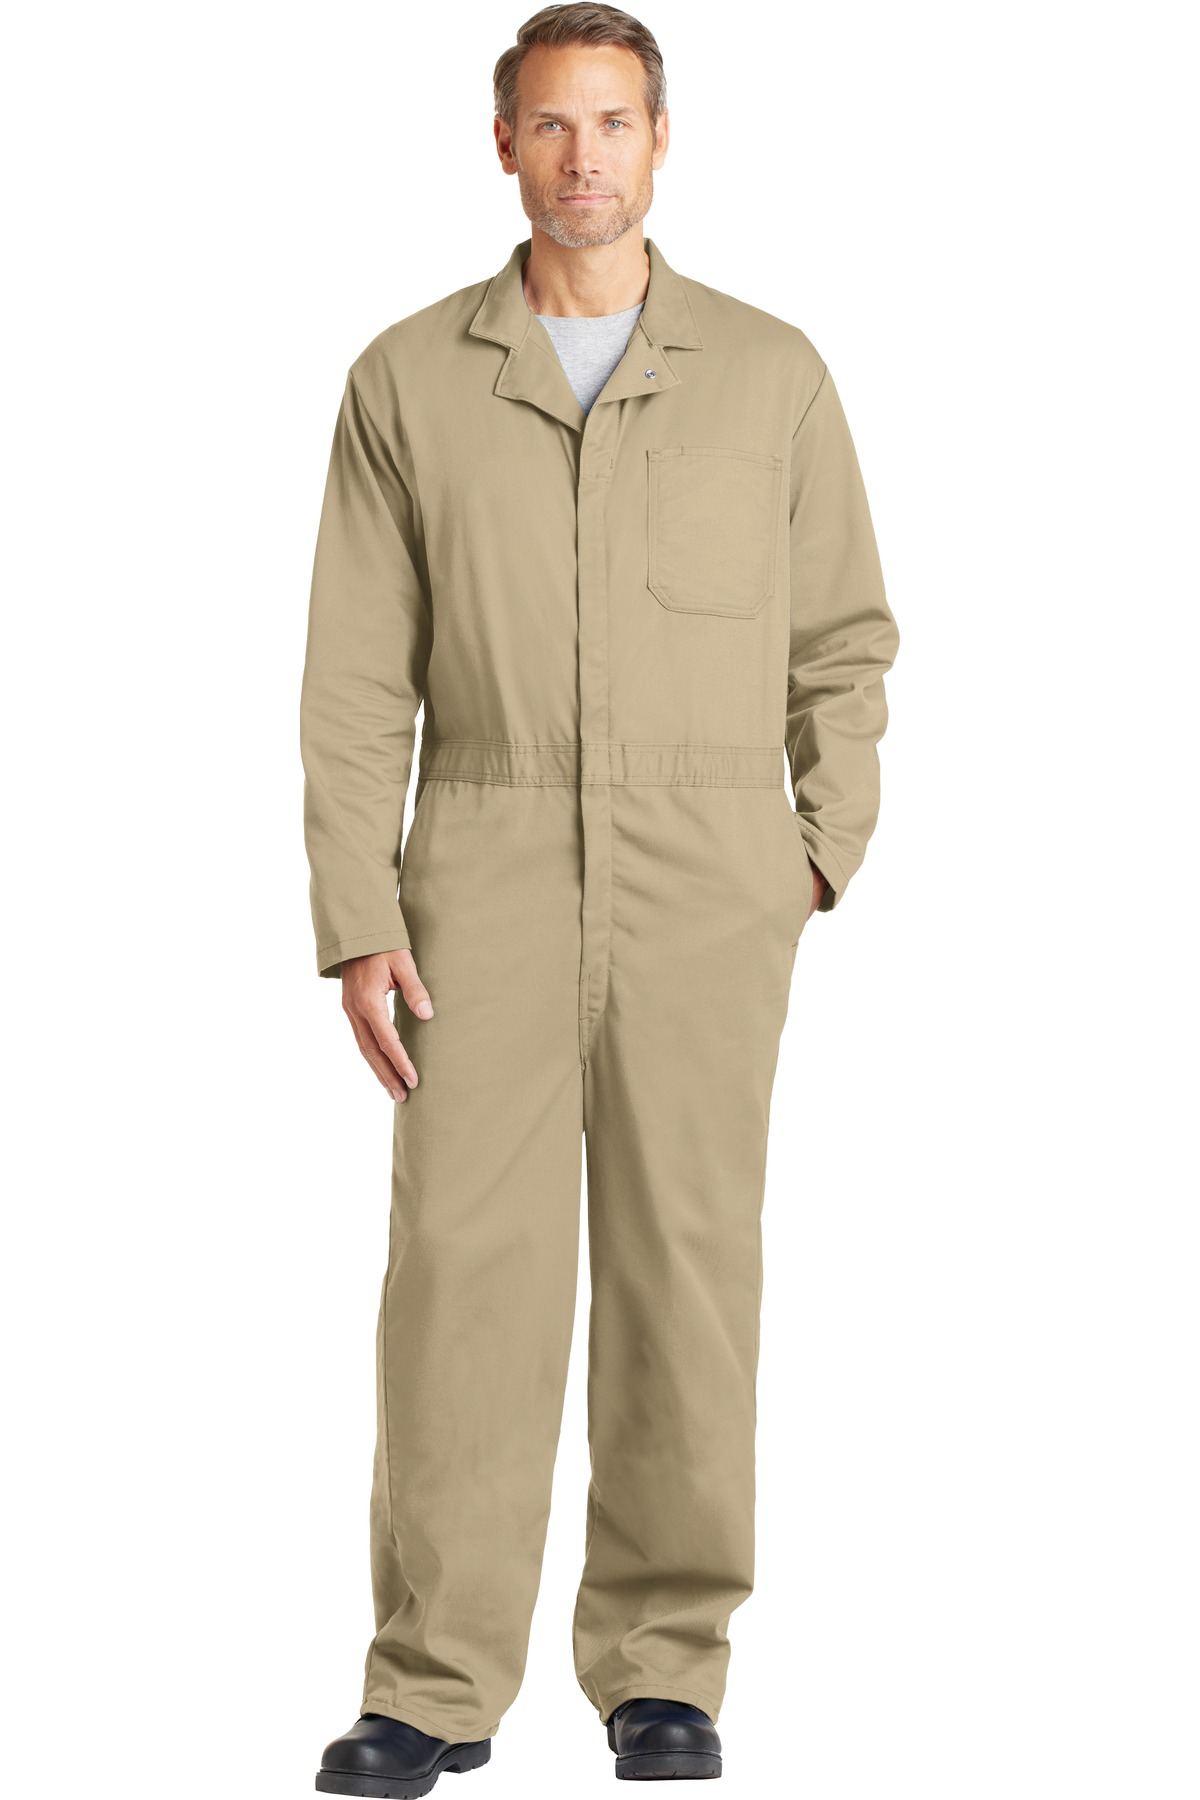 Bulwark  EXCEL FR  CEC2 - Classic Coverall